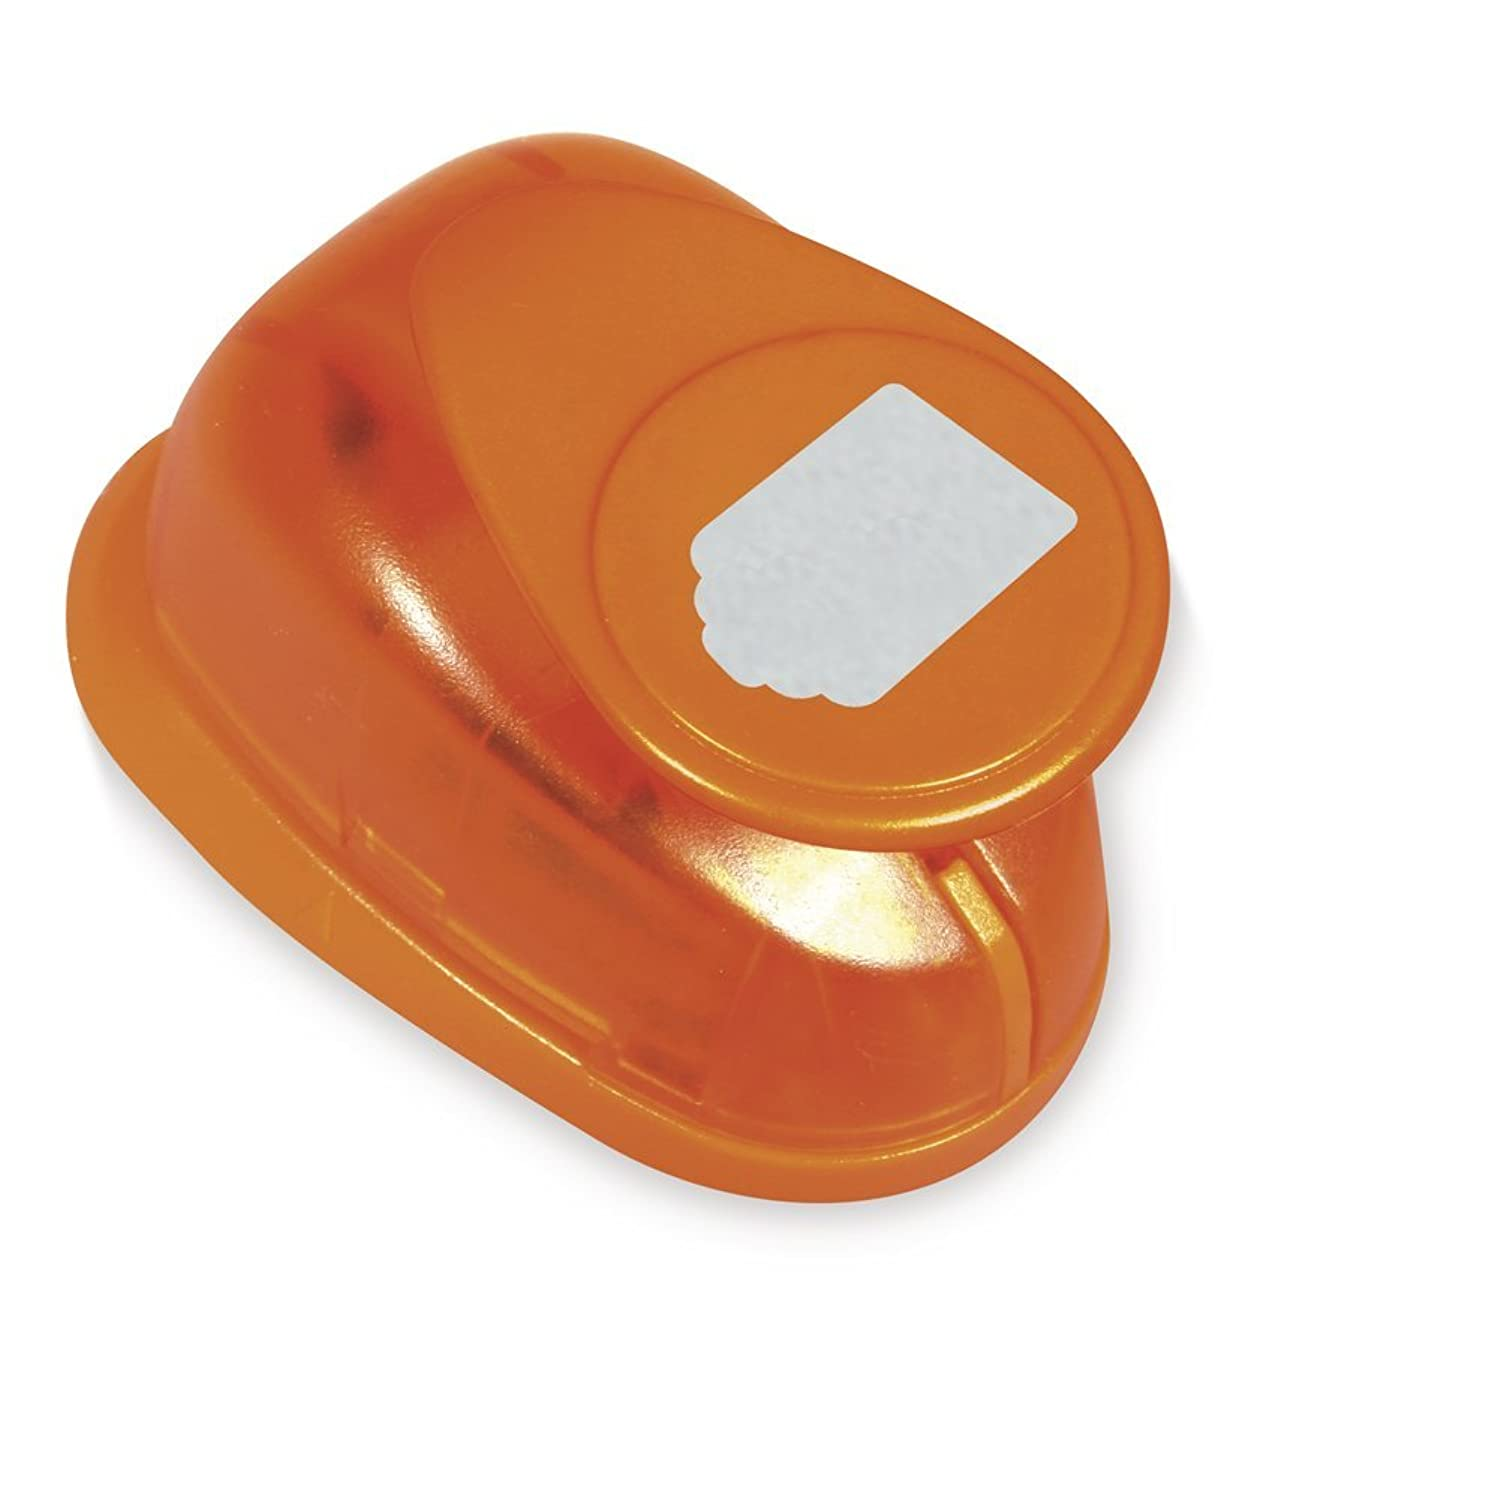 RAYHER Decorative Hole Punch Tag/Label 2,3x1,5?cm, 1?Inch, Ideal for Paper/Card Up to 200?g/m2, Plastic, Orange, 2,3x1,5cm- 1 Zoll